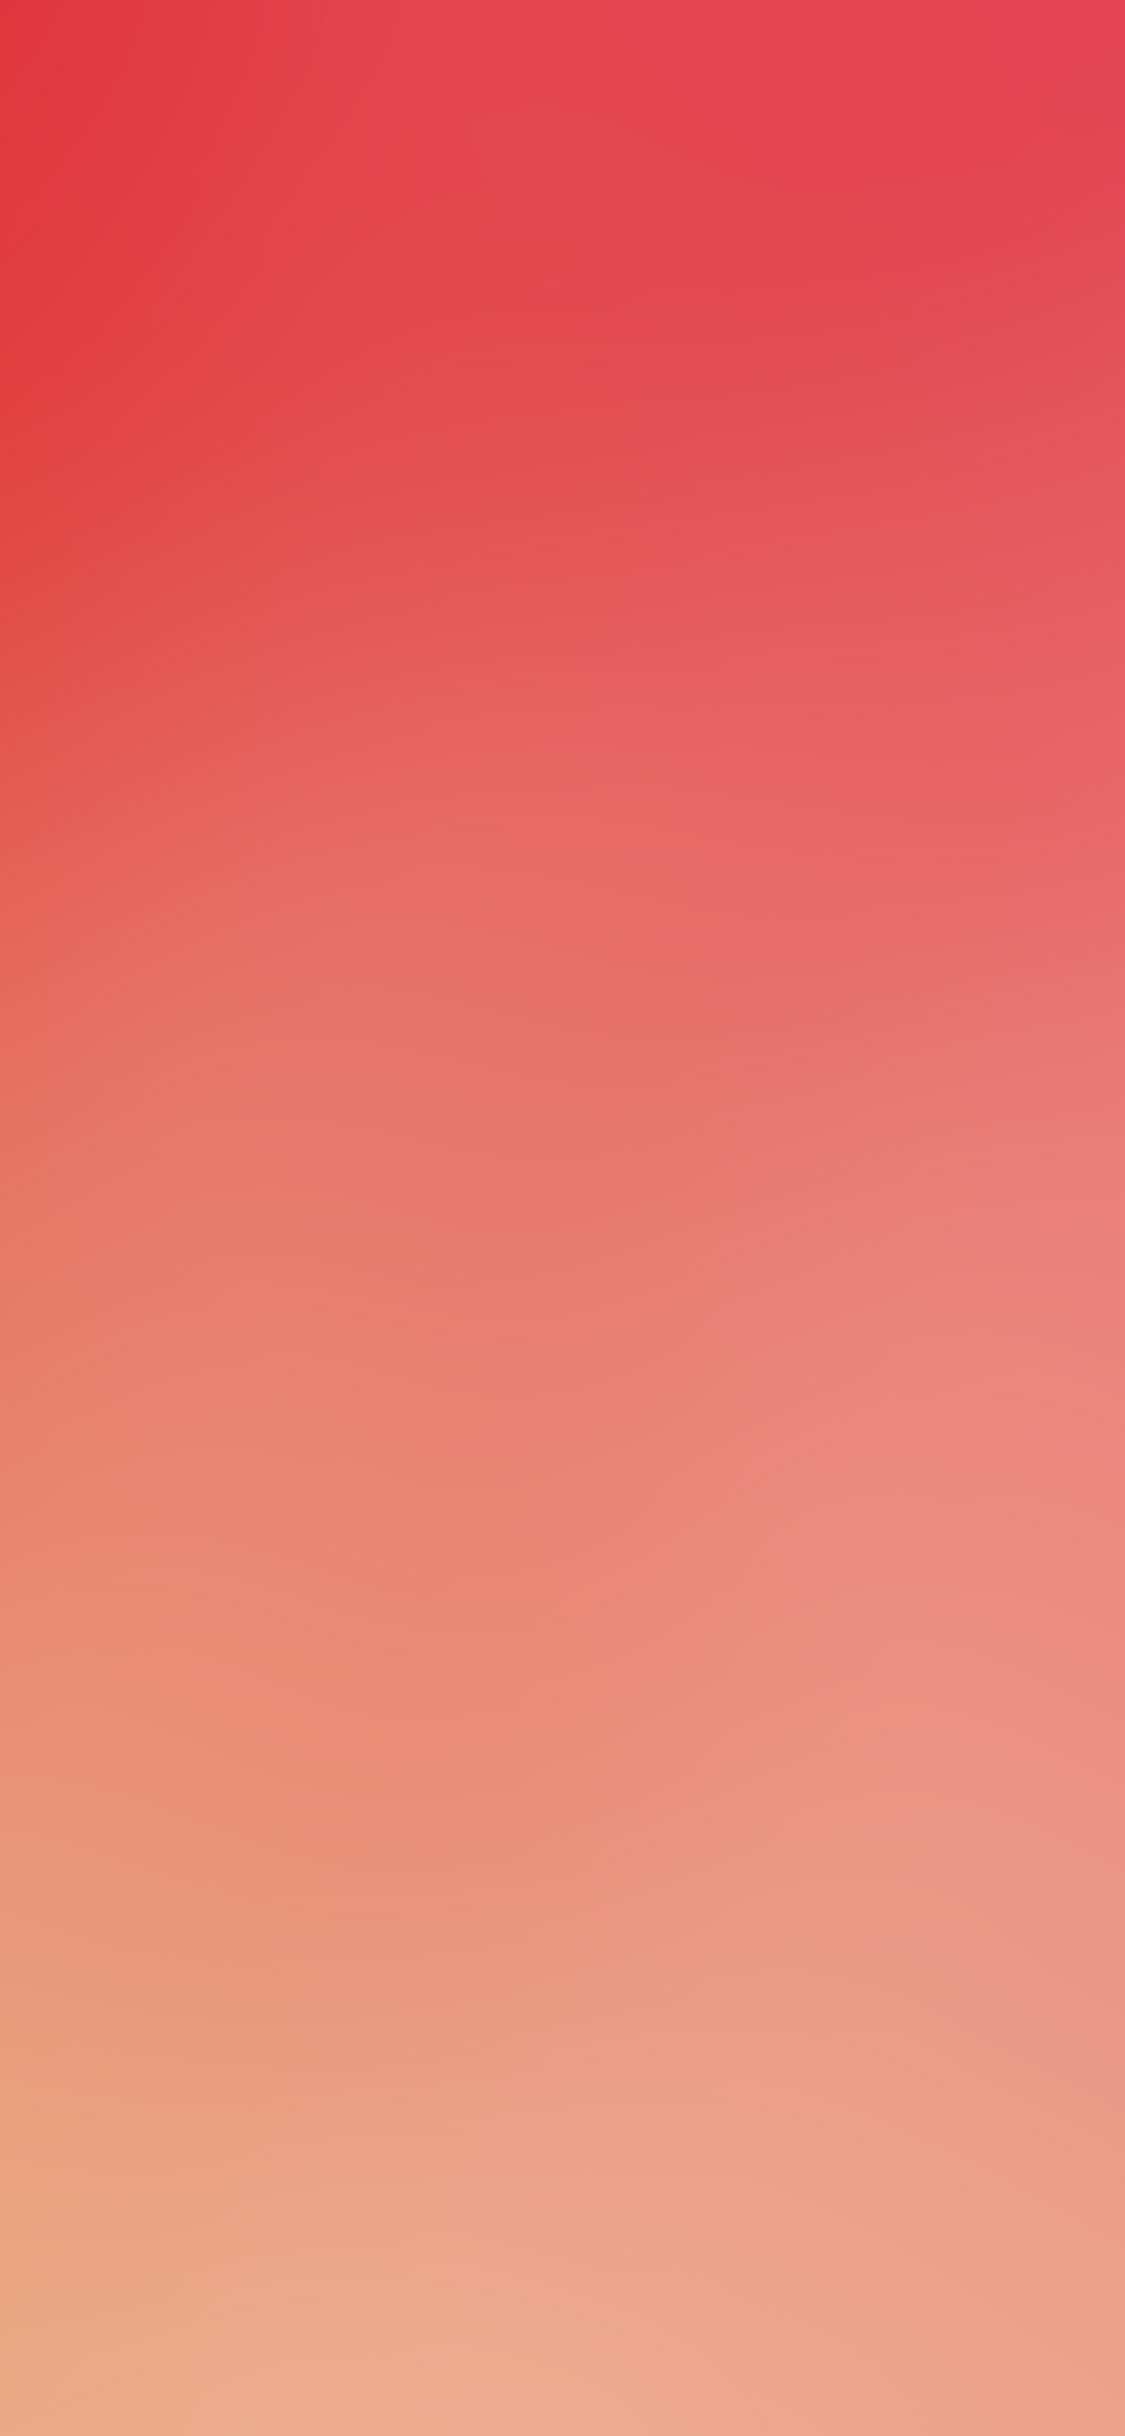 iPhonexpapers.com-Apple-iPhone-wallpaper-sm04-red-pink-blur-gradation